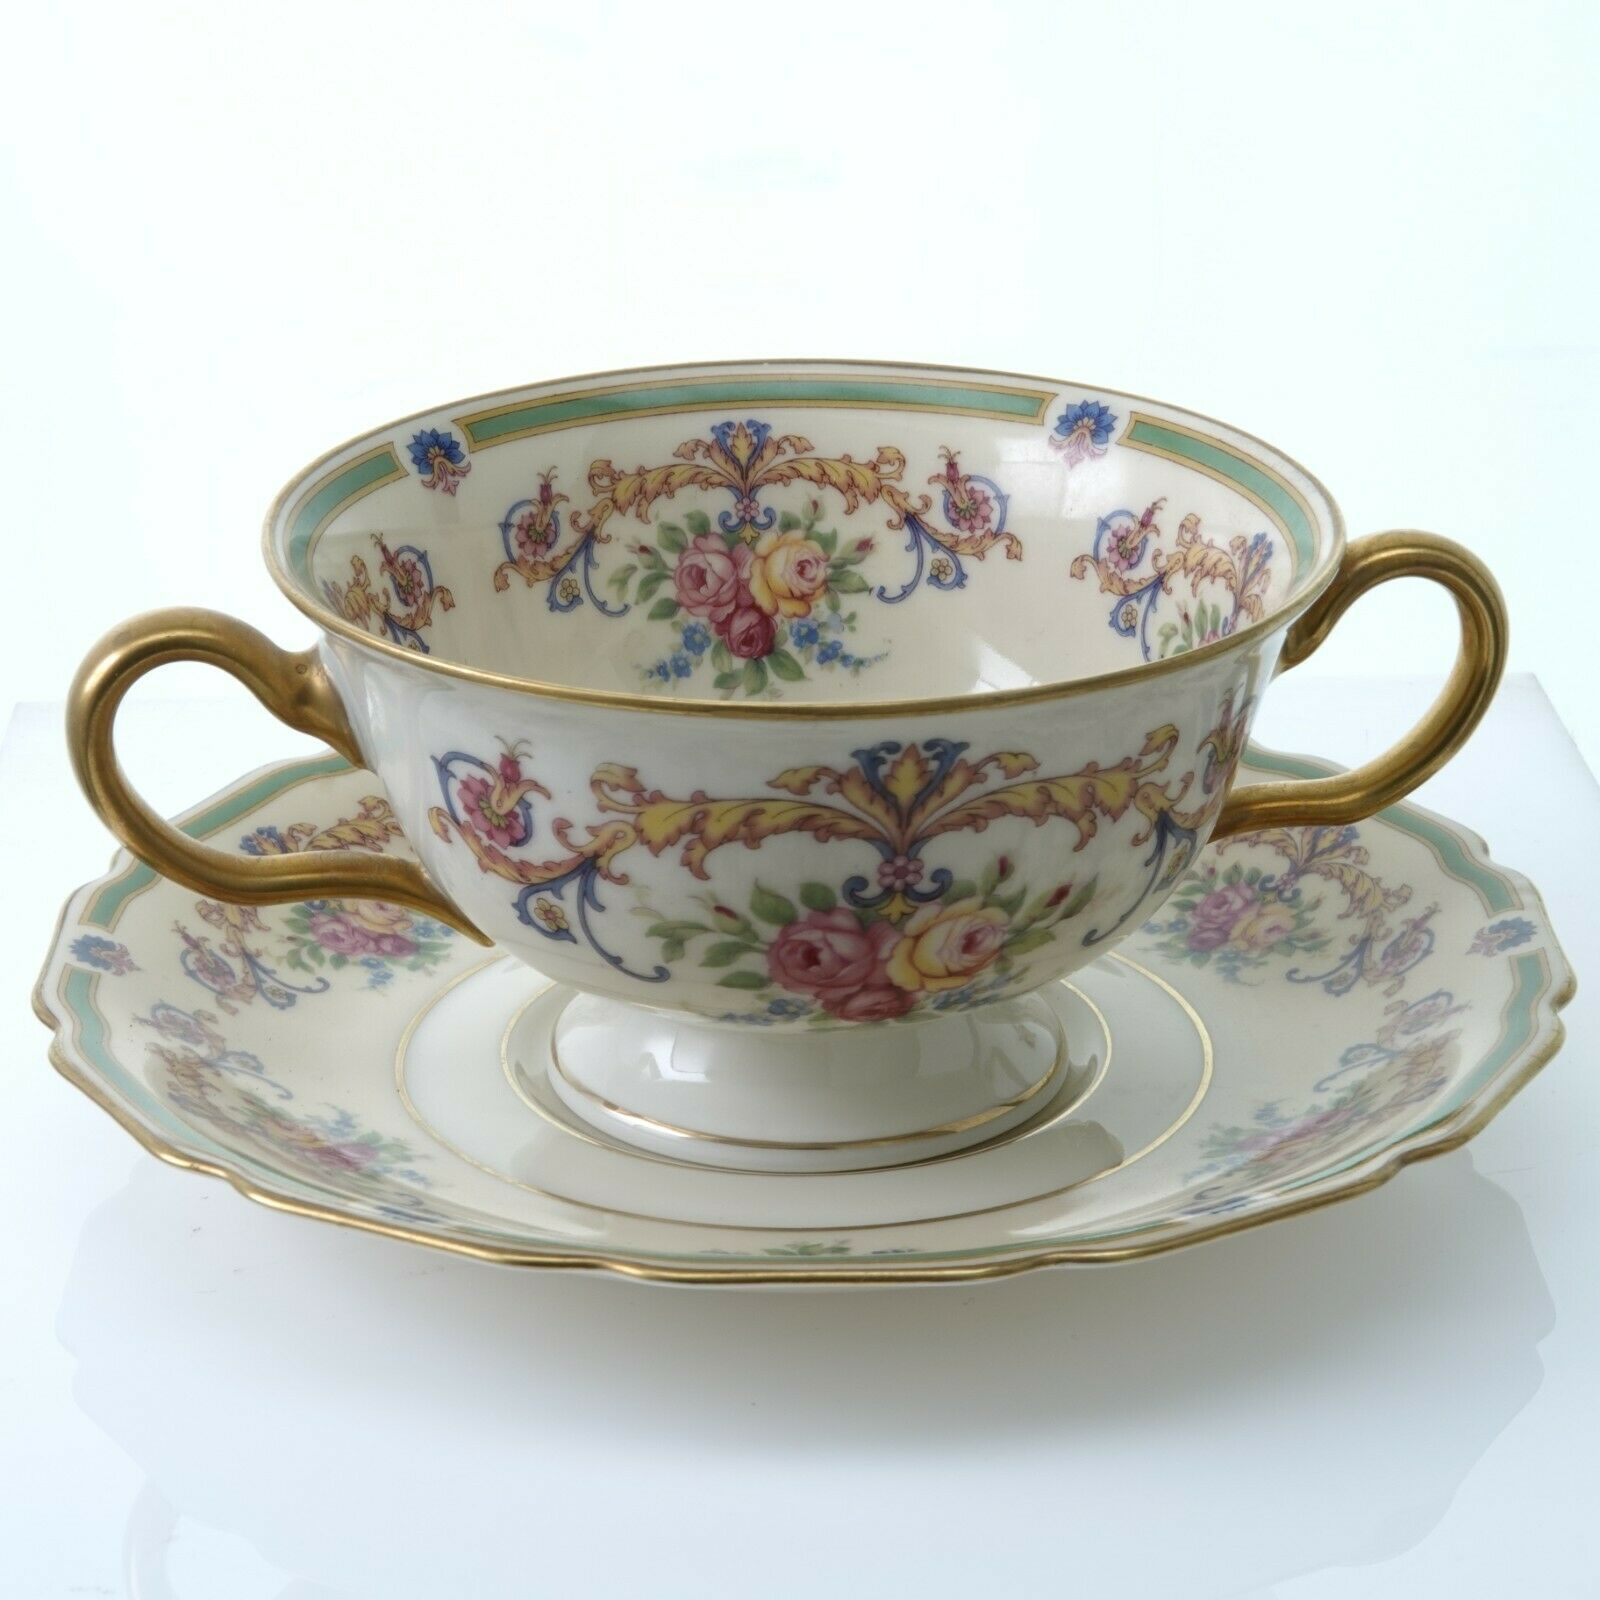 Primary image for Rosenthal WESTBURY Two Handled Bouillon Cup and Saucer (Multiple Available)